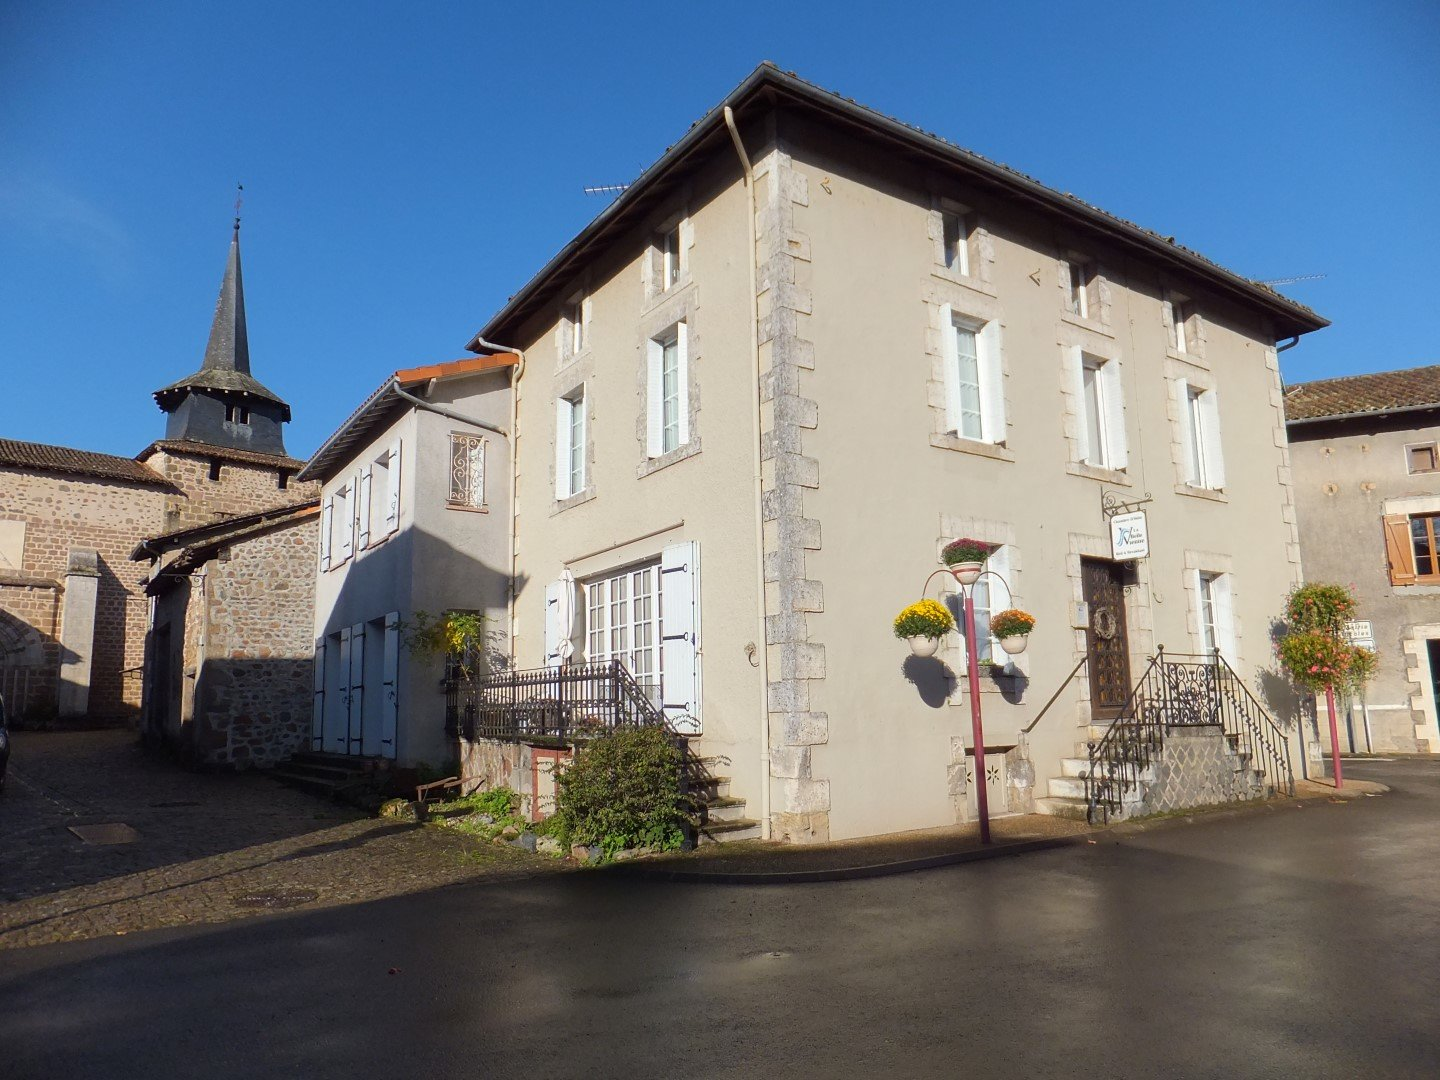 Bed & Breakfast, 7 rooms for sale in the Poitou-Charentes